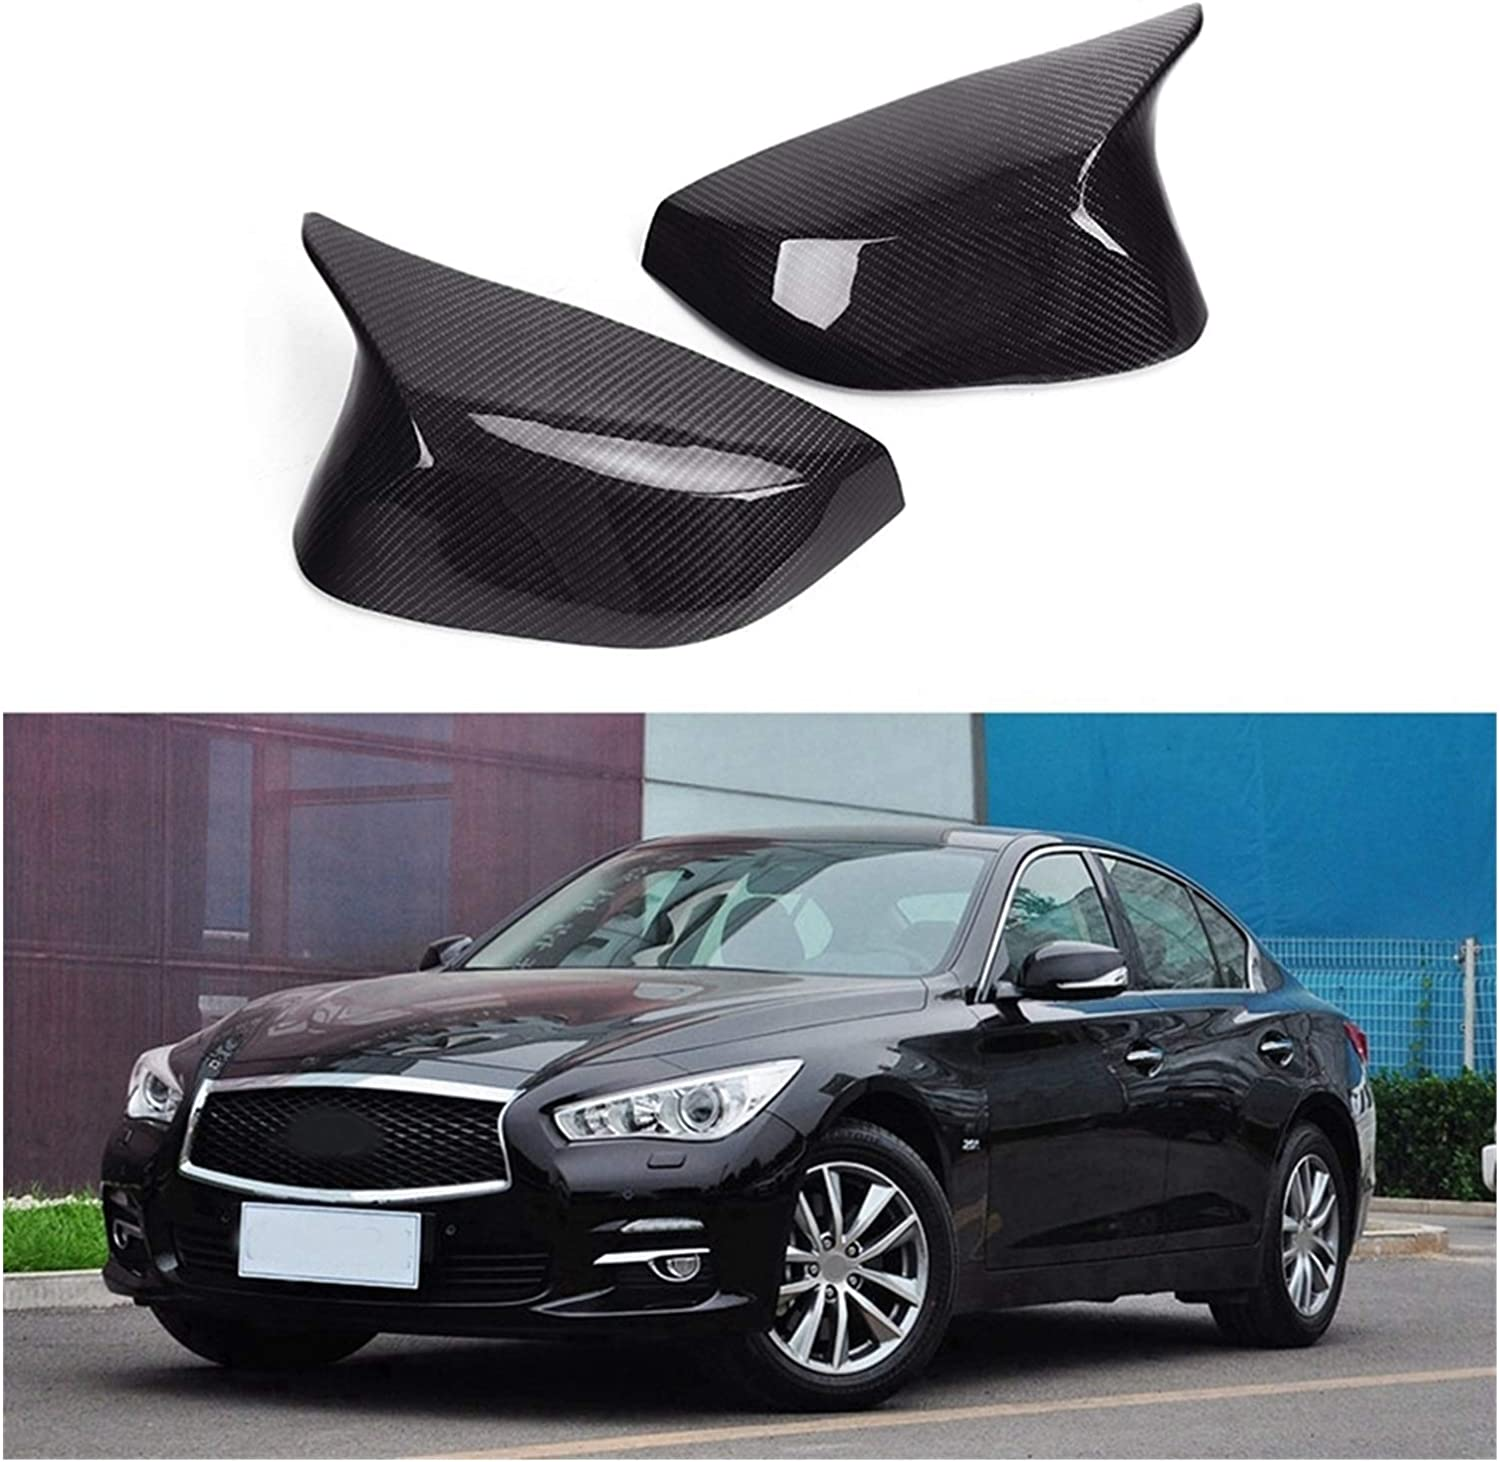 KKLL 2Pcs Carbon Fiber Side Rear Cover Mirror Cap Replaceme Oakland Mall View Free shipping